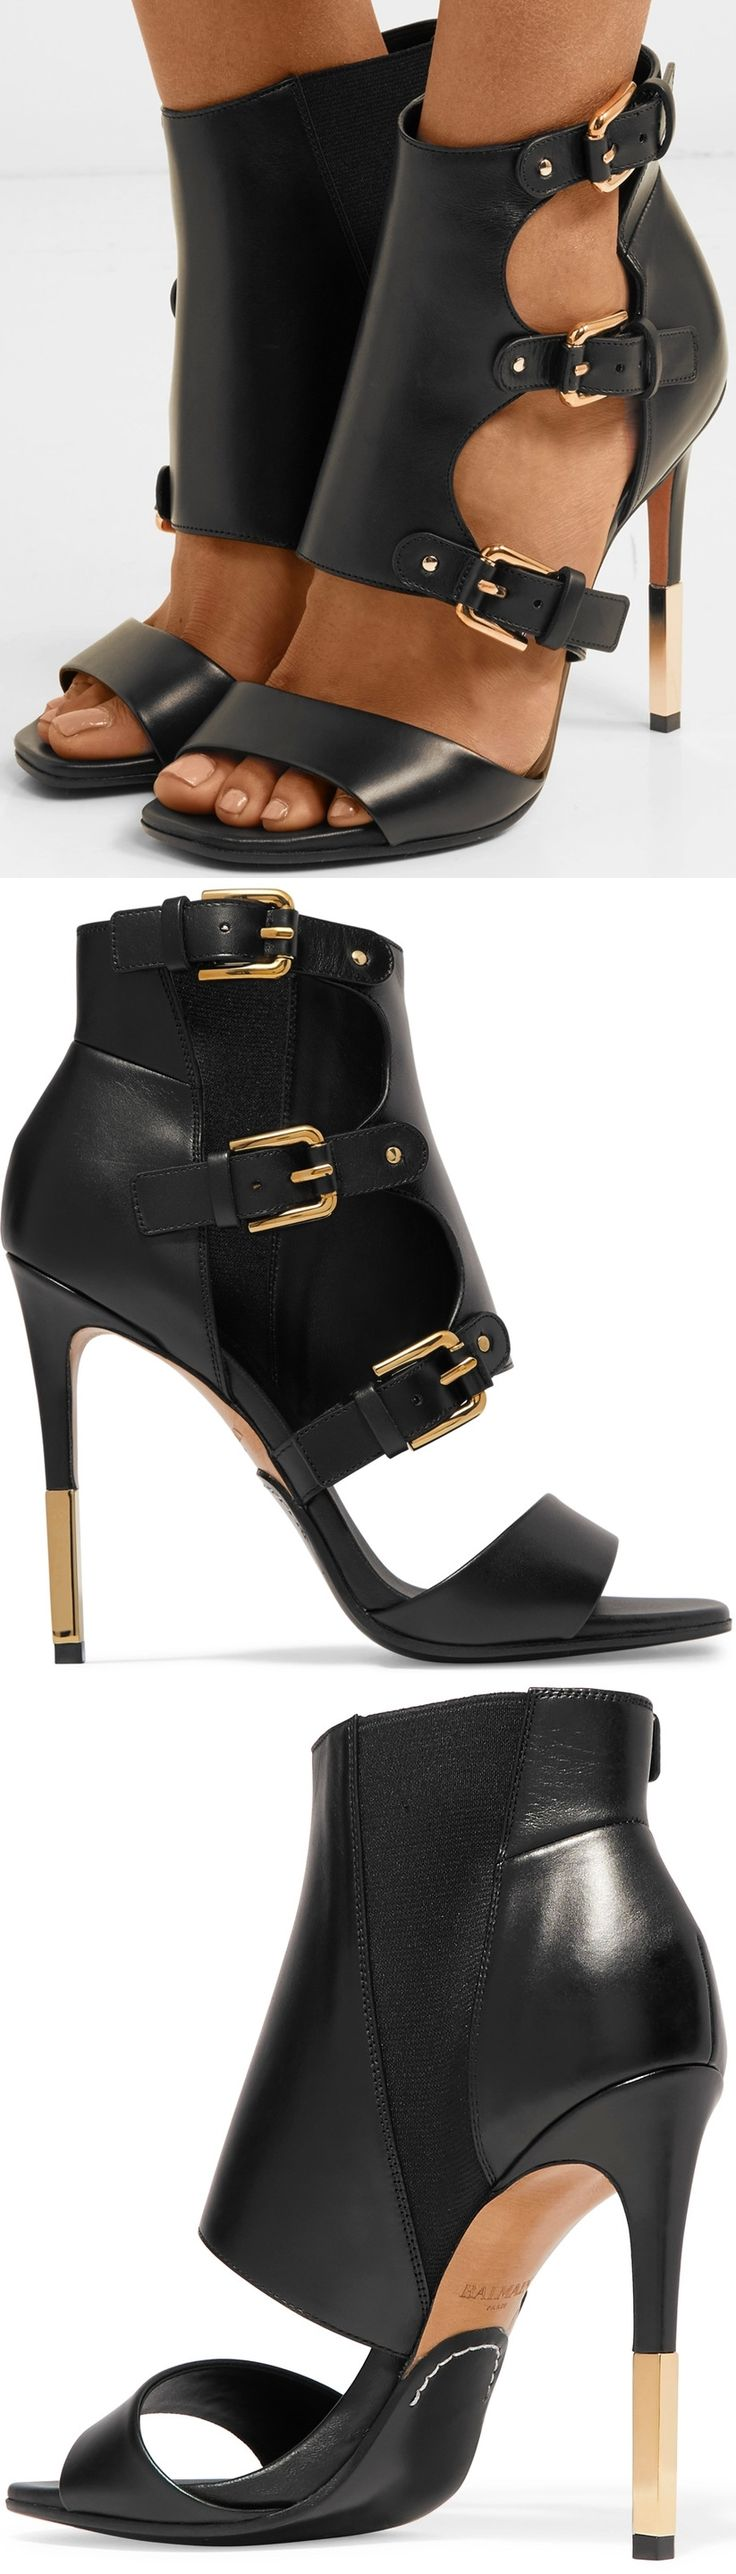 Balmain's 'Alienor' sandals are updated for fall with a trio of buckles and a polished gold tip on the heel. They've been made in Italy from smooth black leather and have flexible elasticated panels at the sides.